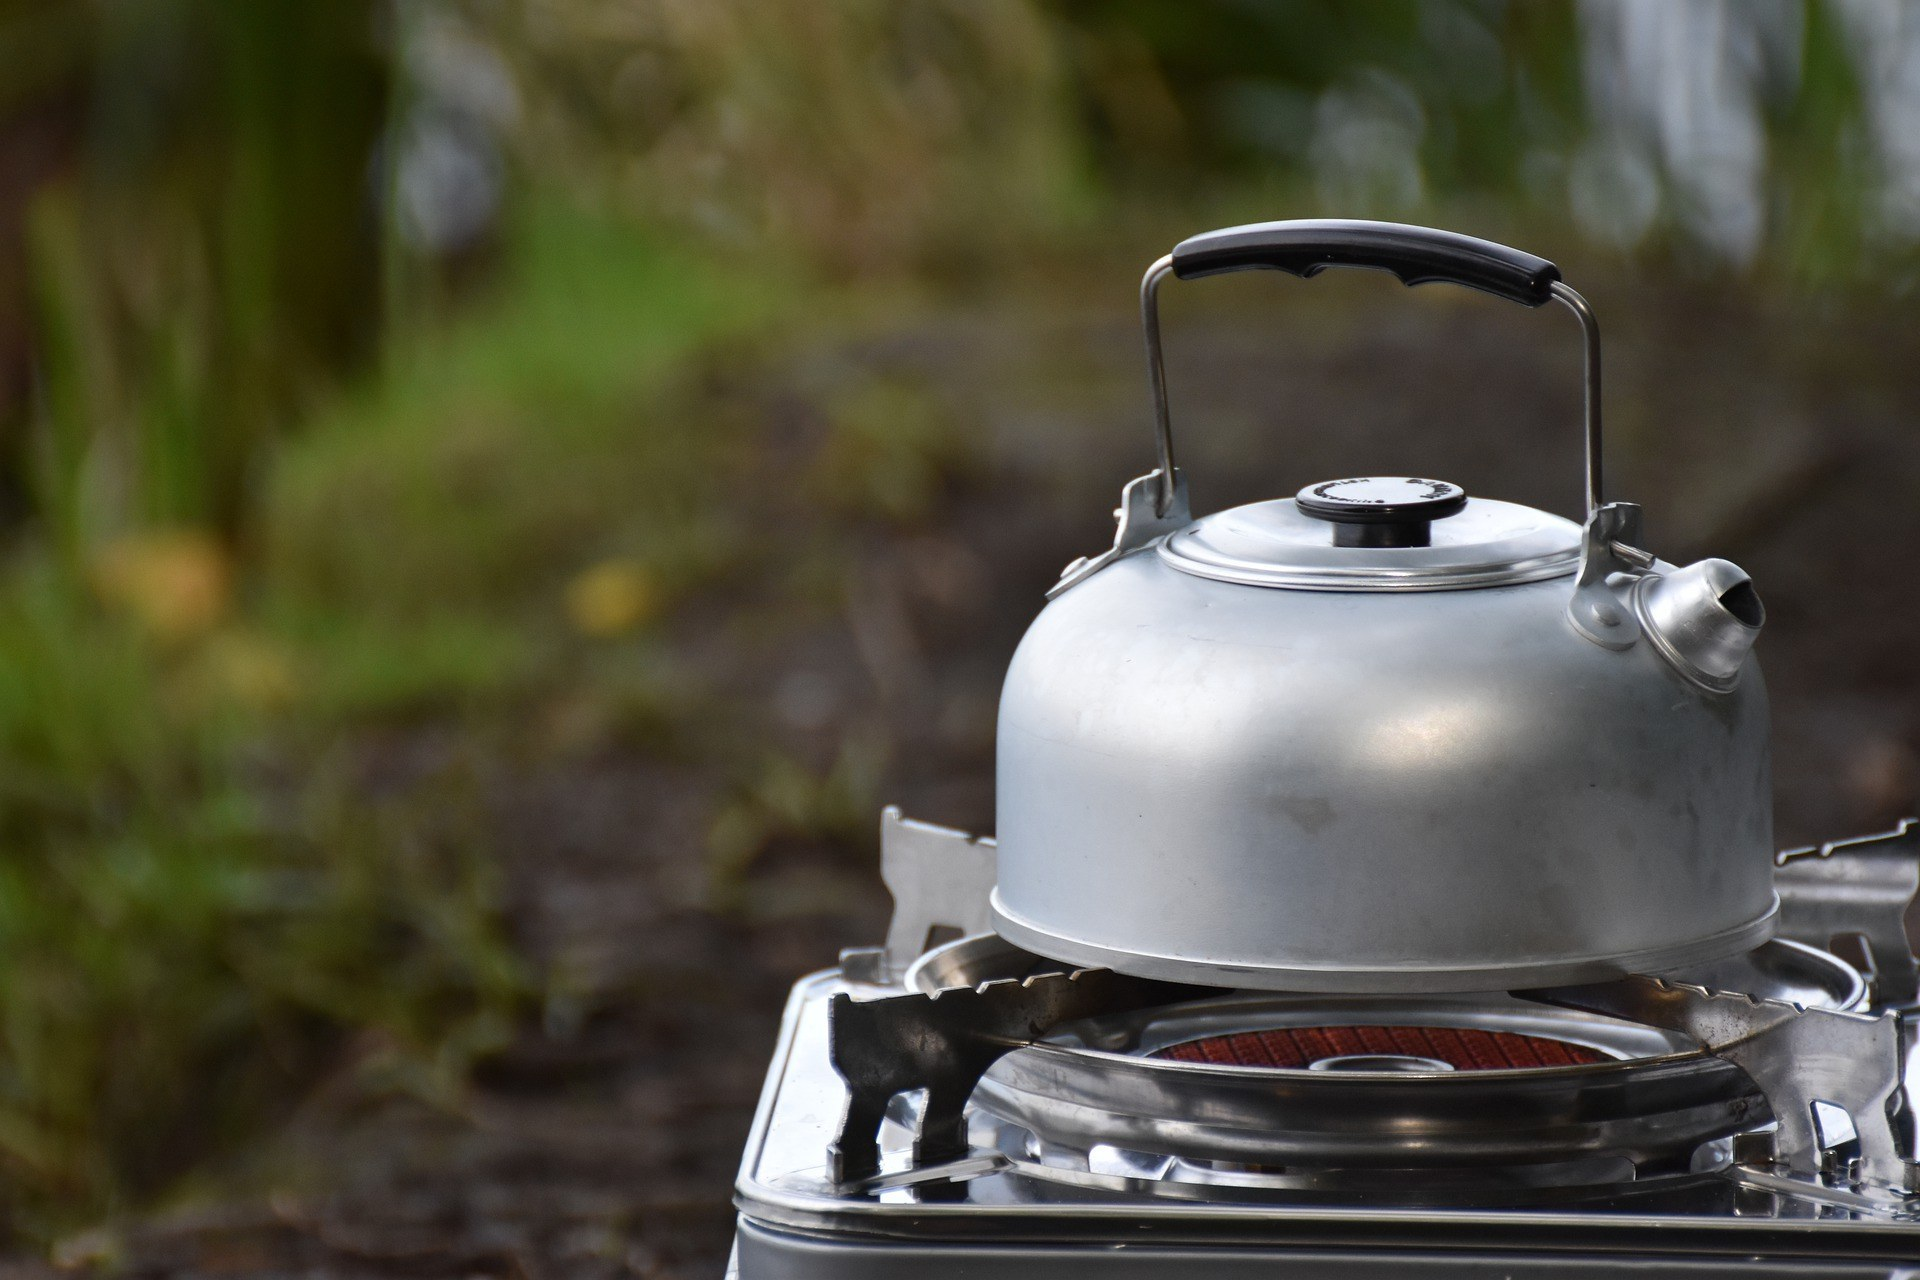 Kettle on a camping stove